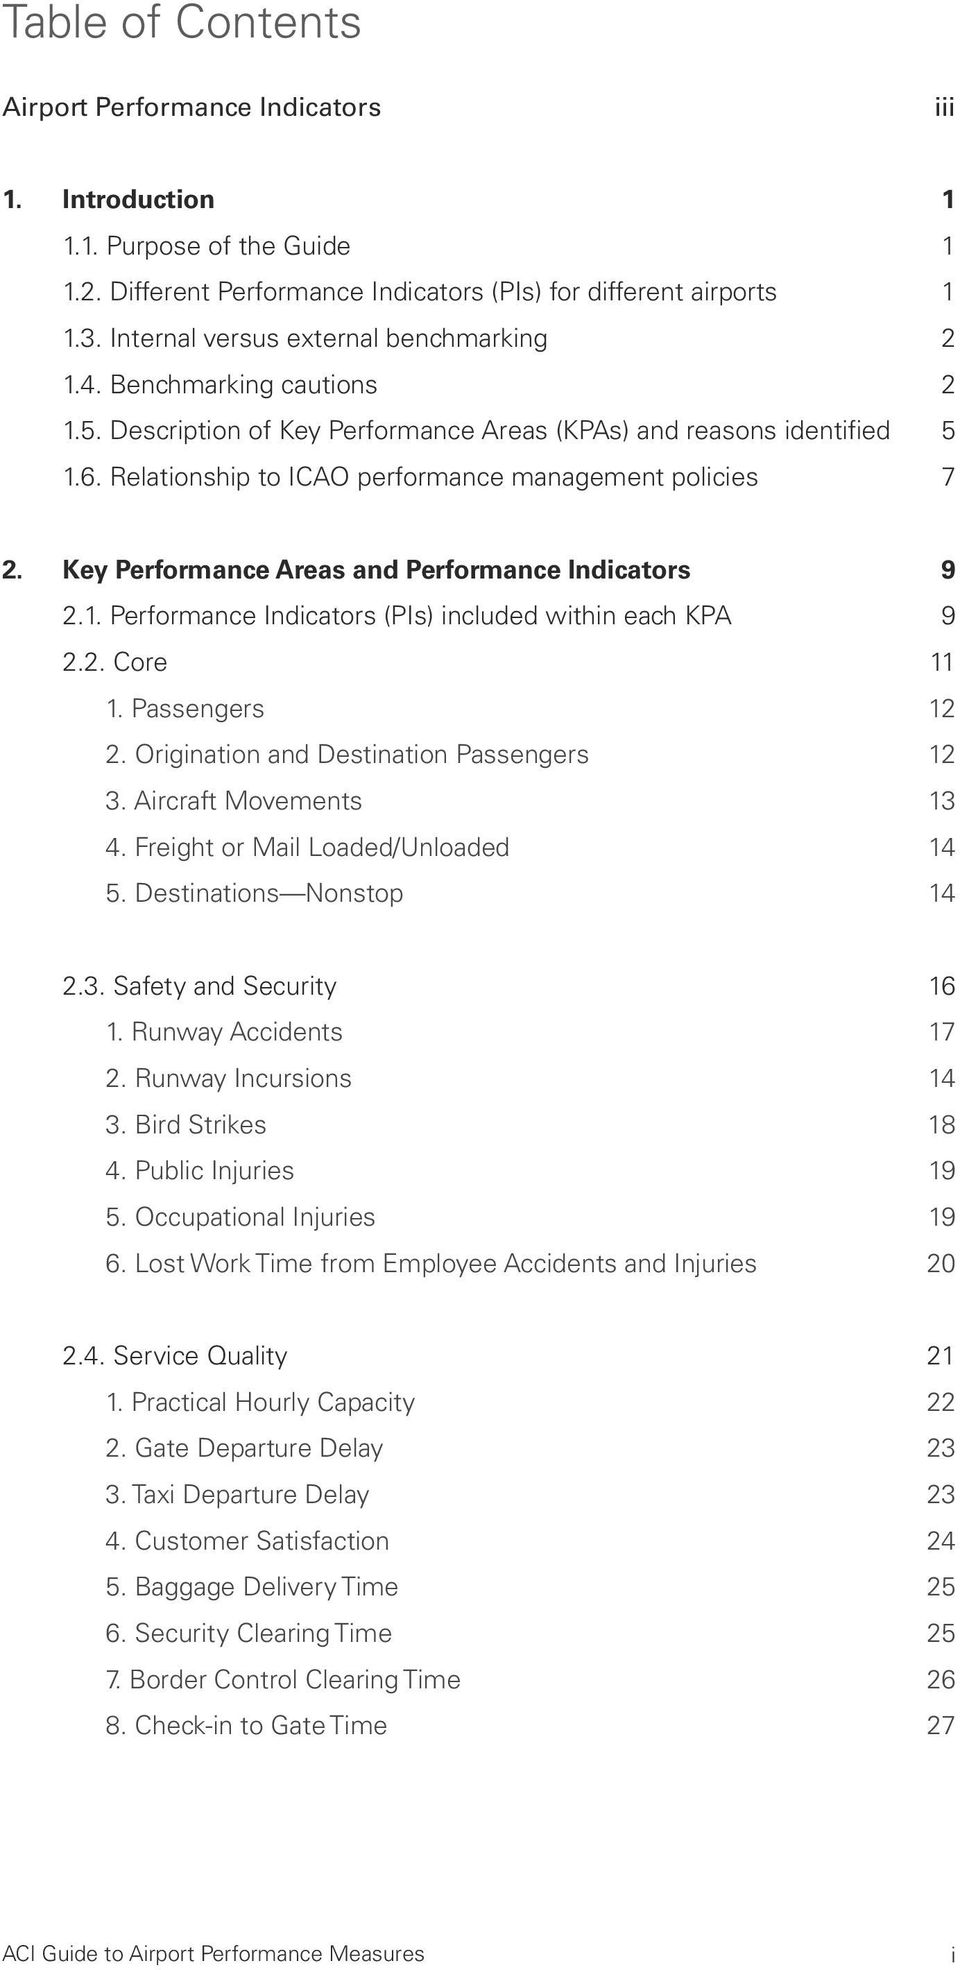 Key Performance Areas and Performance Indicators 9 2.1. Performance Indicators (PIs) included within each KPA 9 2.2. Core 11 1. Passengers 12 2. Origination and Destination Passengers 12 3.